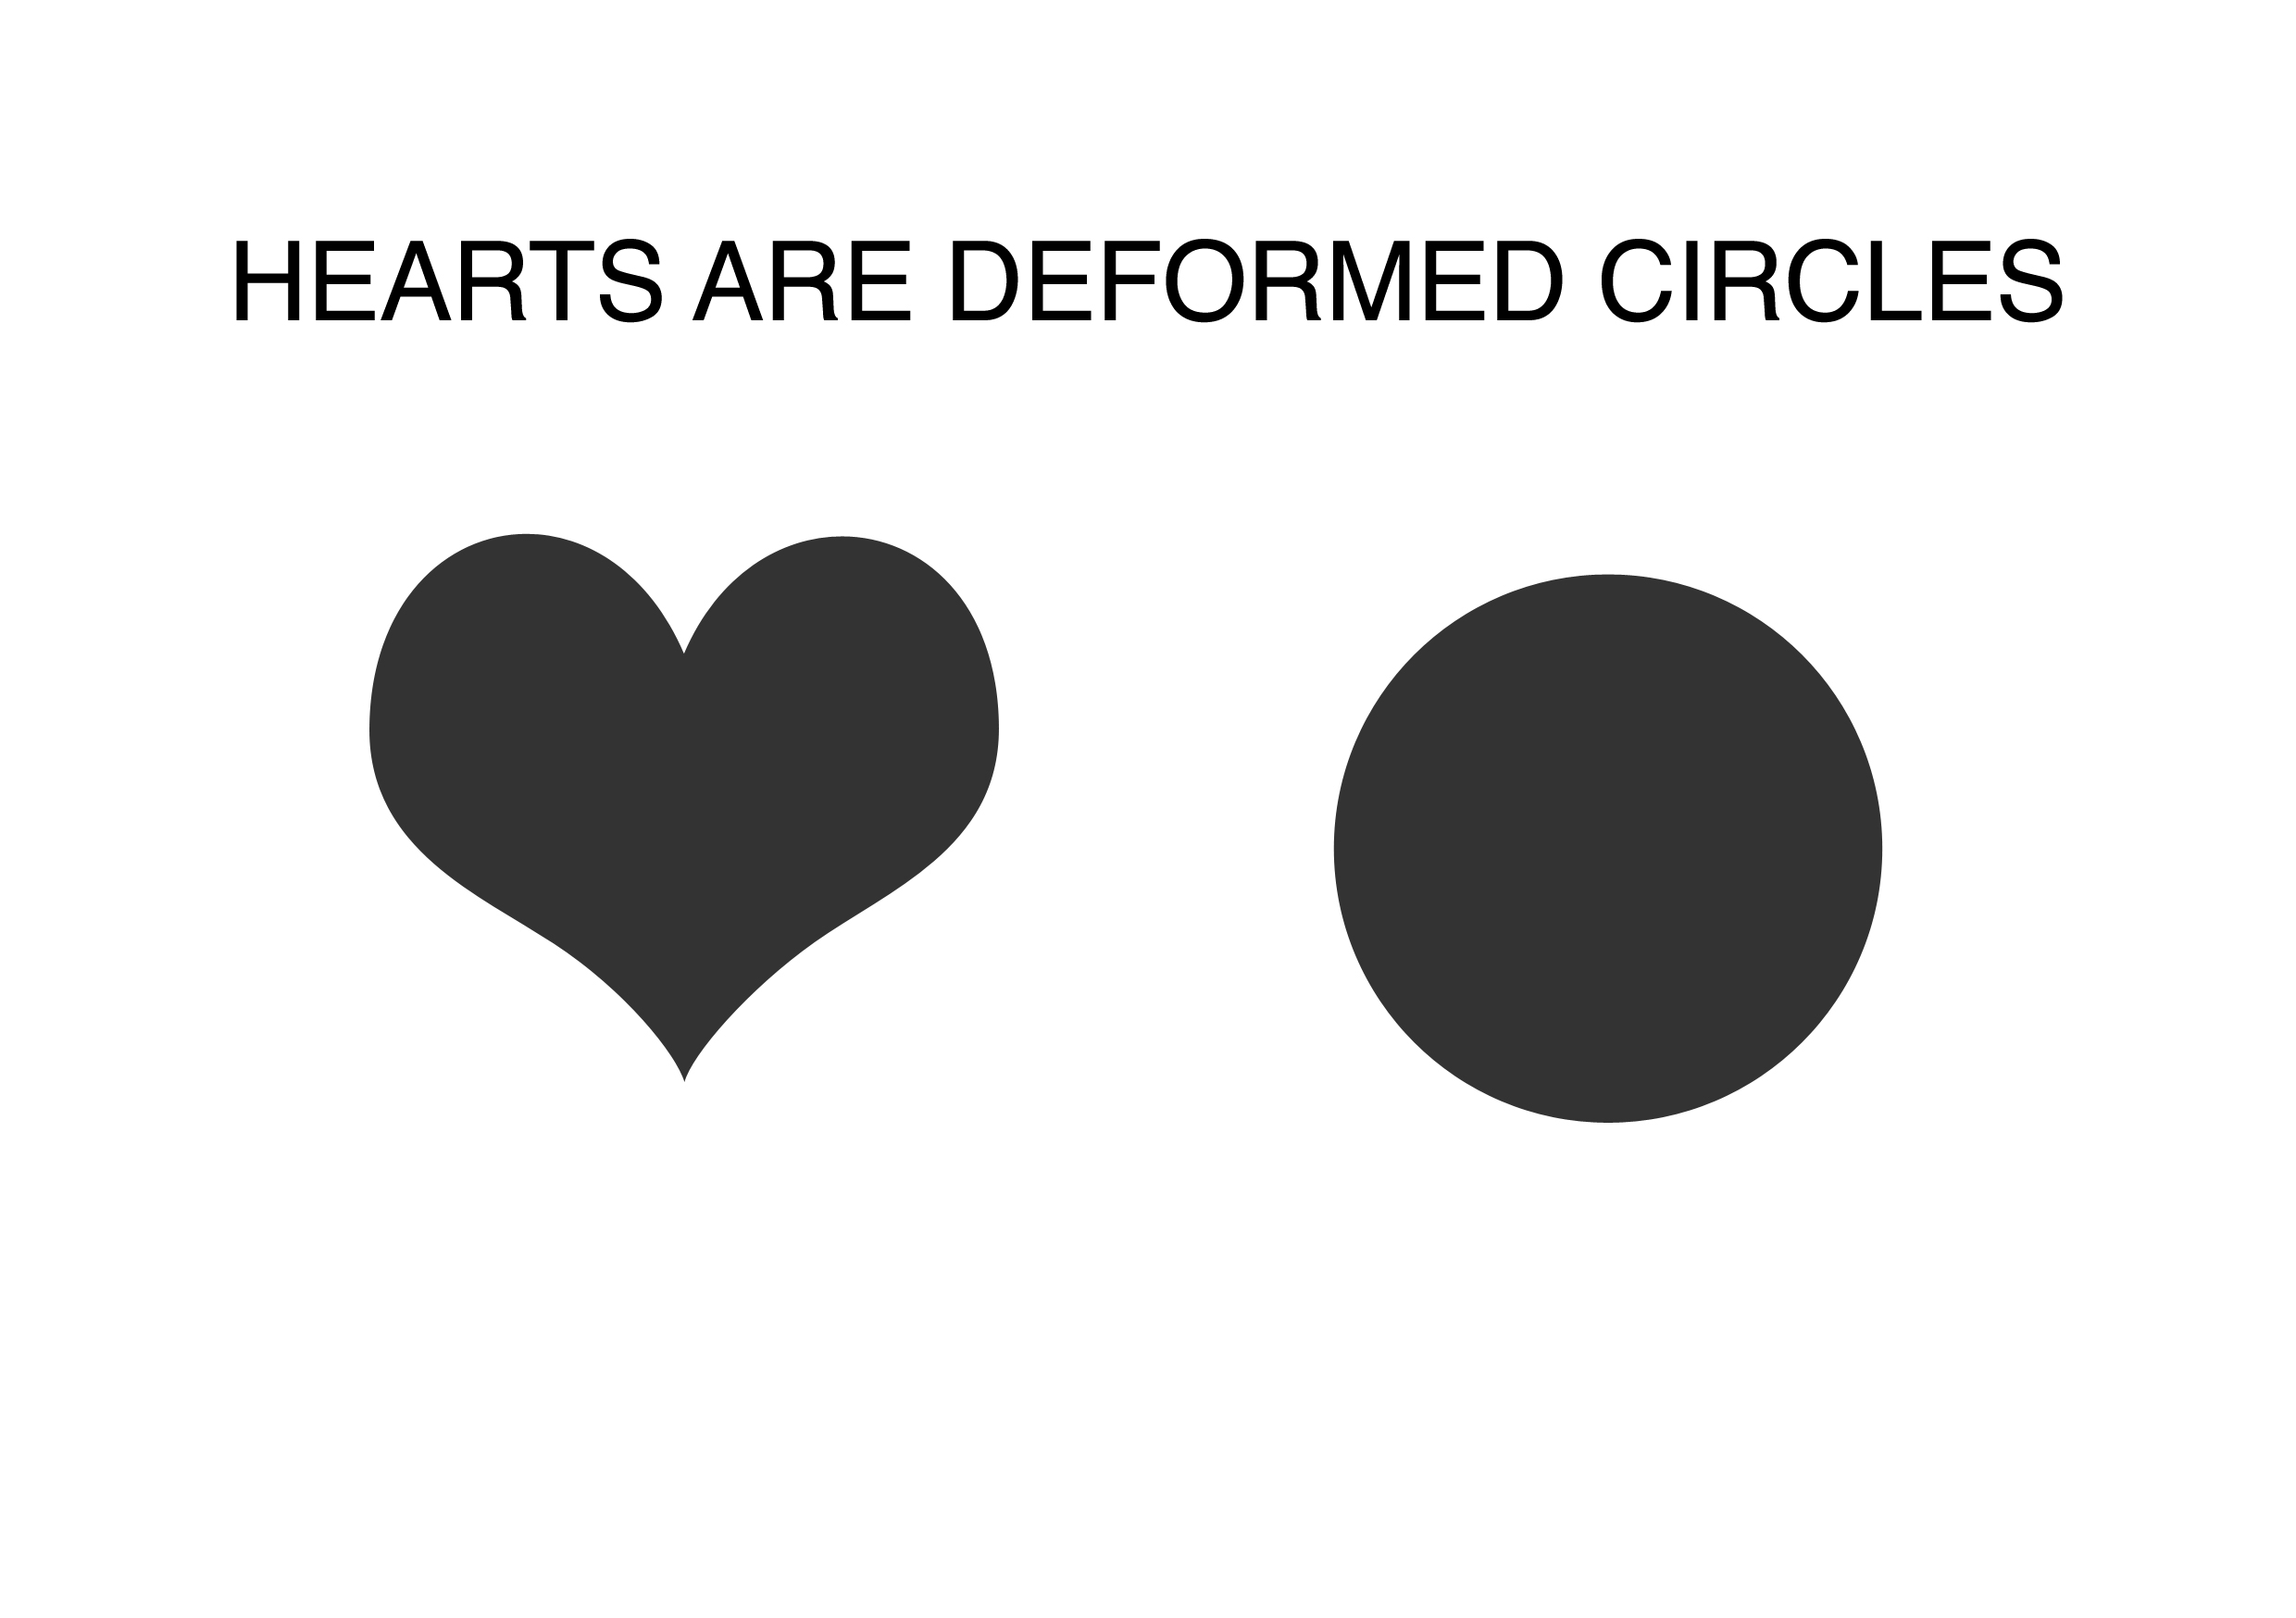 Don't Believe The Hype - Hearts Are Deformed Circles